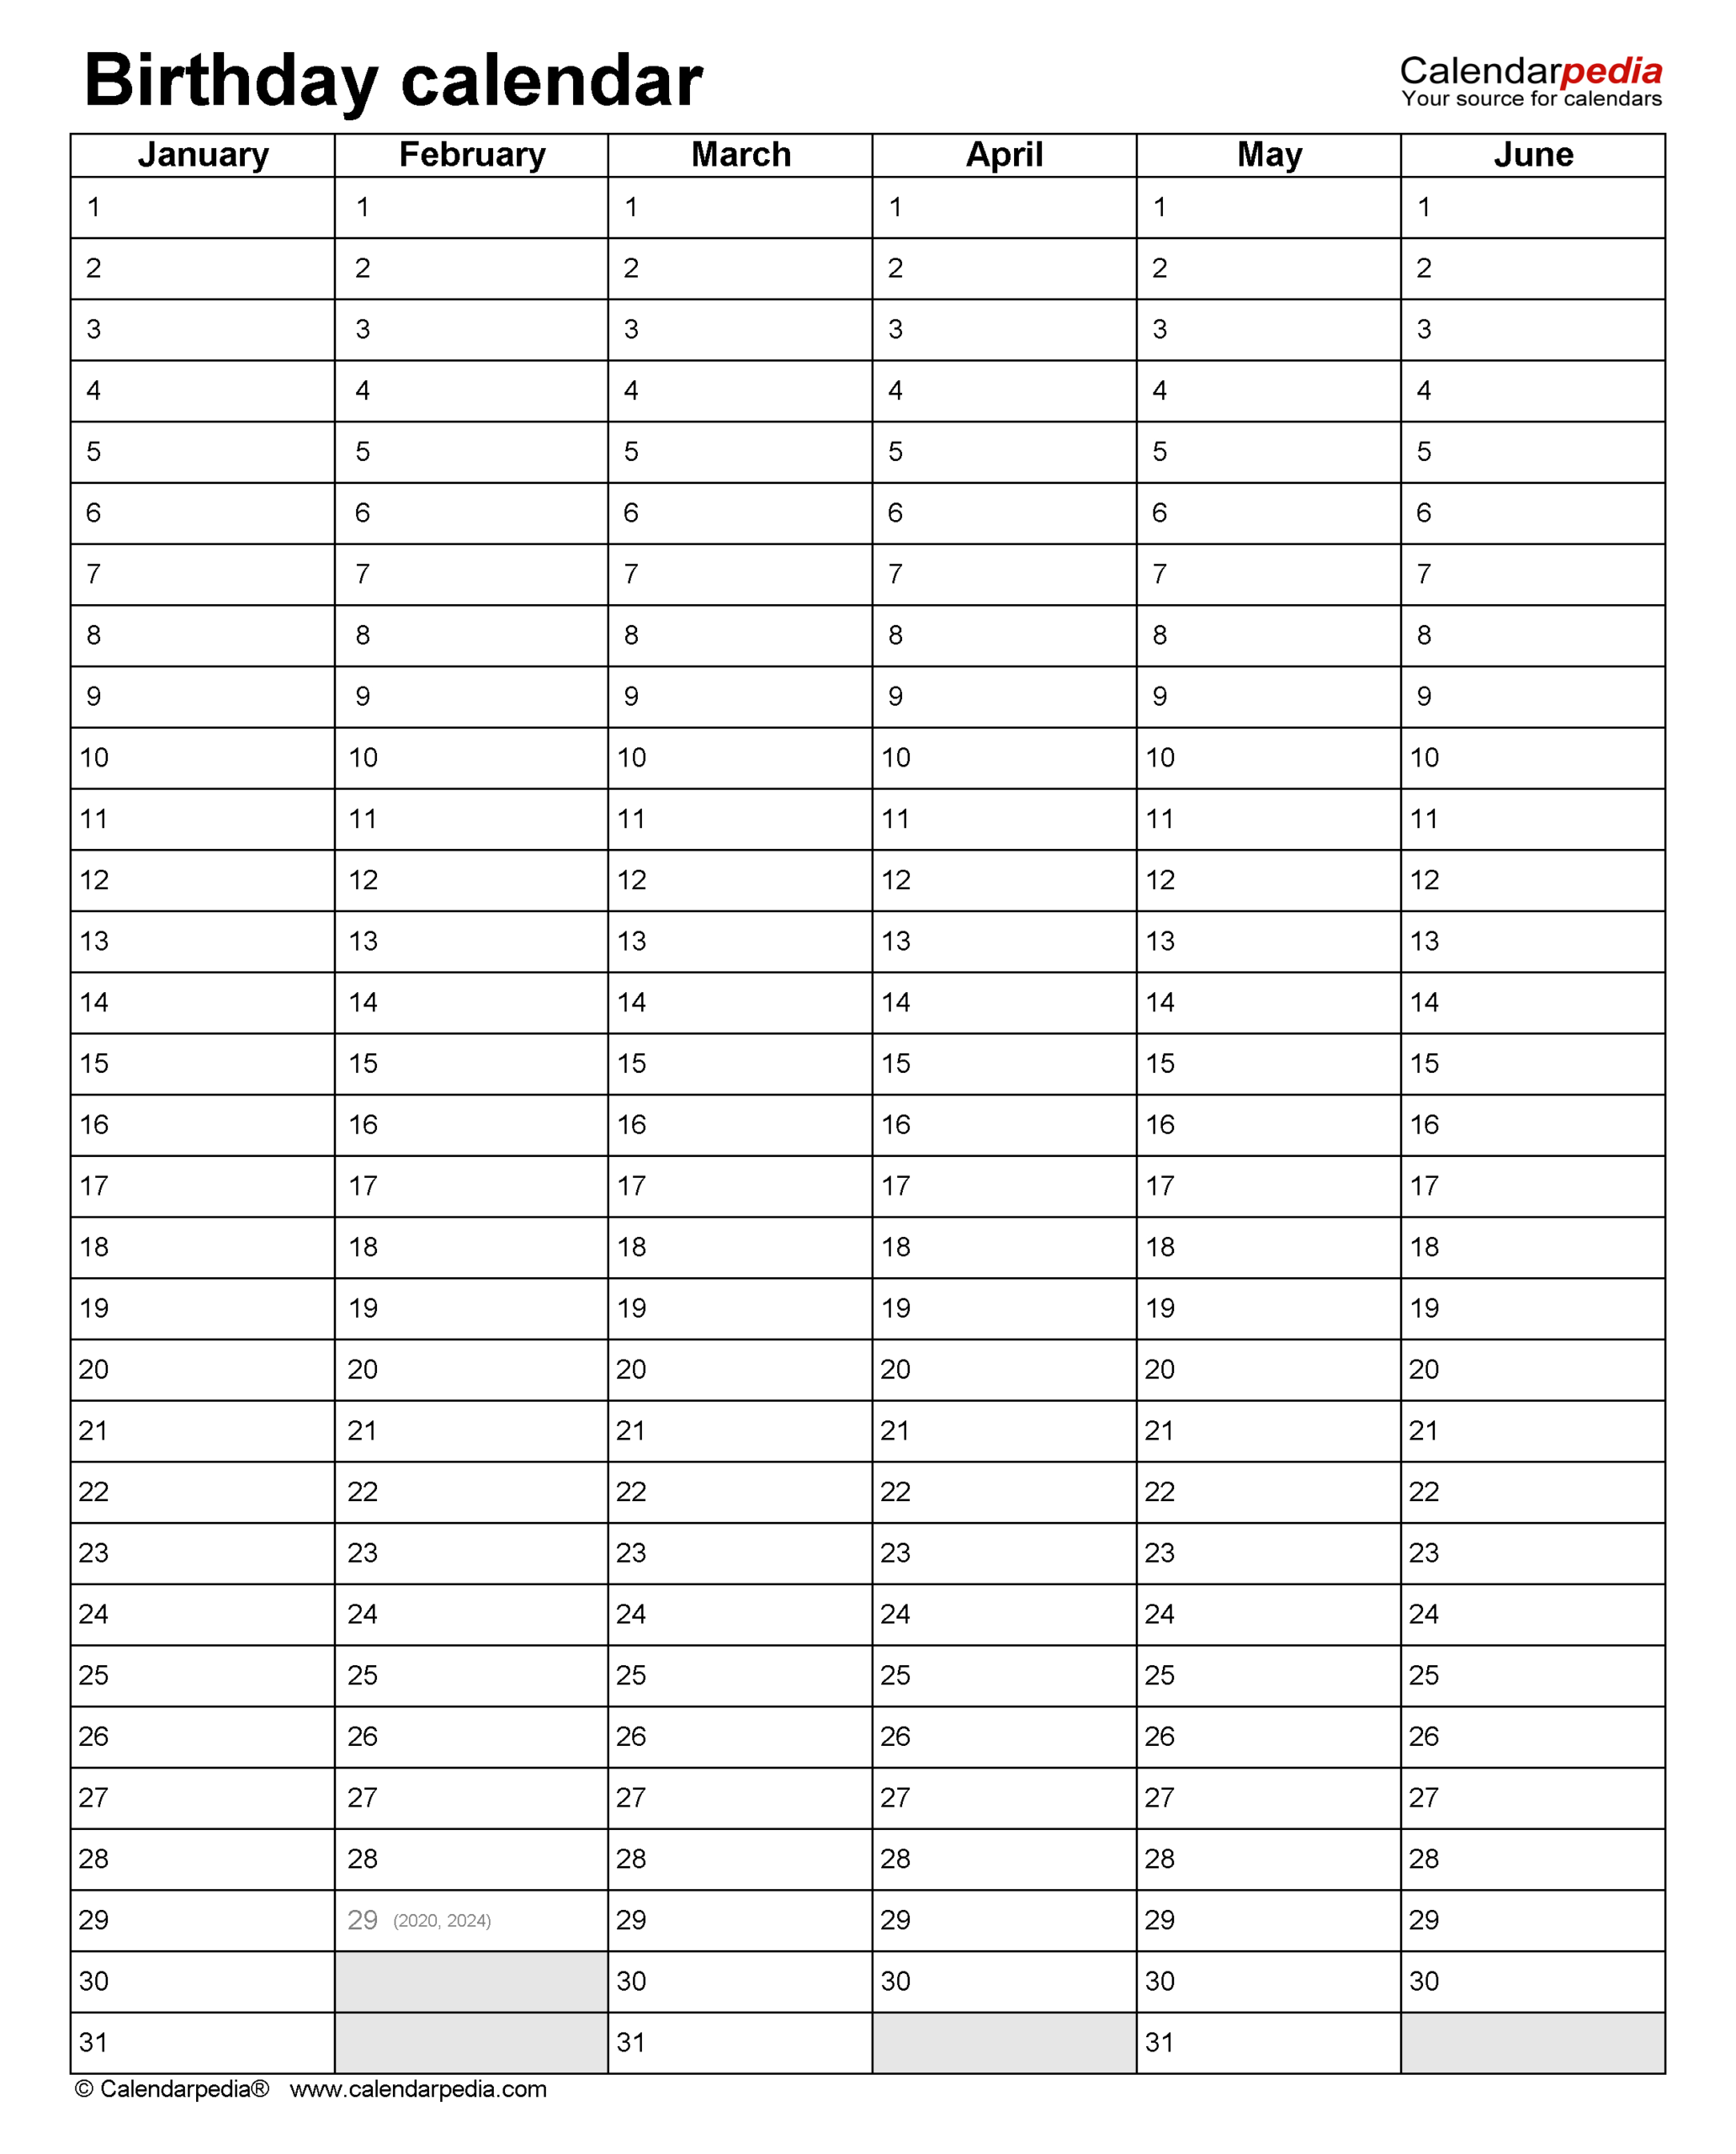 Birthday Calendars - Free Printable Microsoft Word Templates With Regard To Personal Word Wall Template